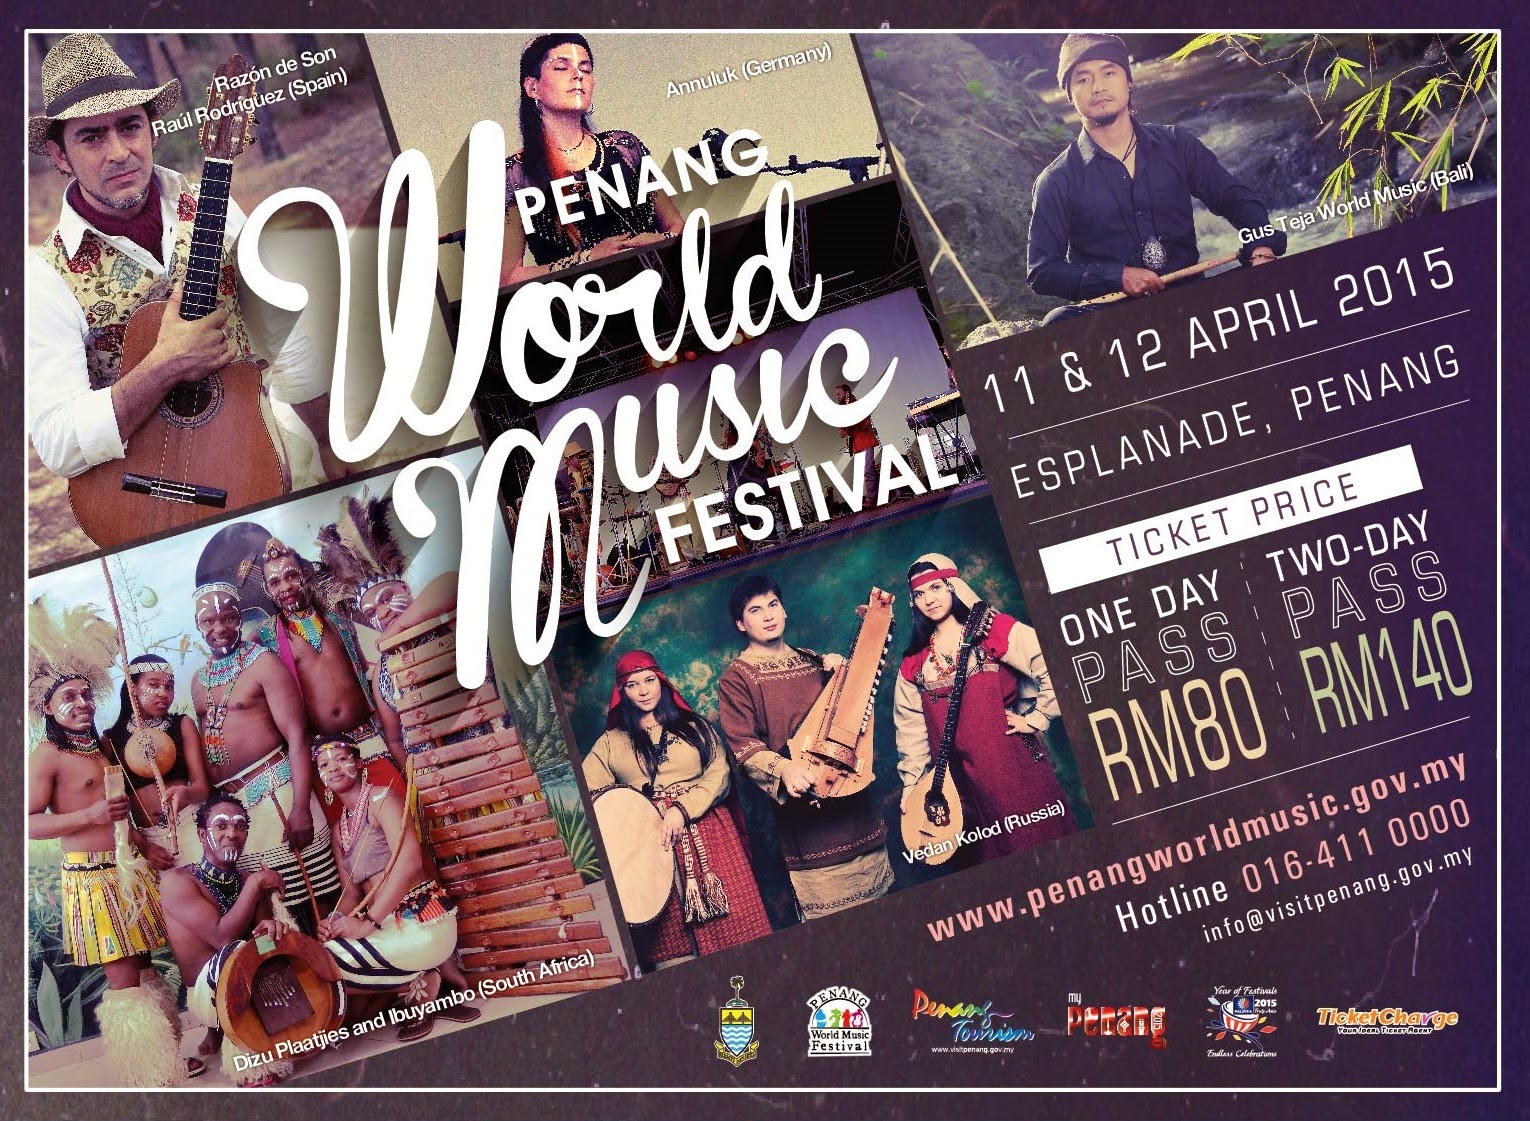 Penang World Music Fest takes place this weekend